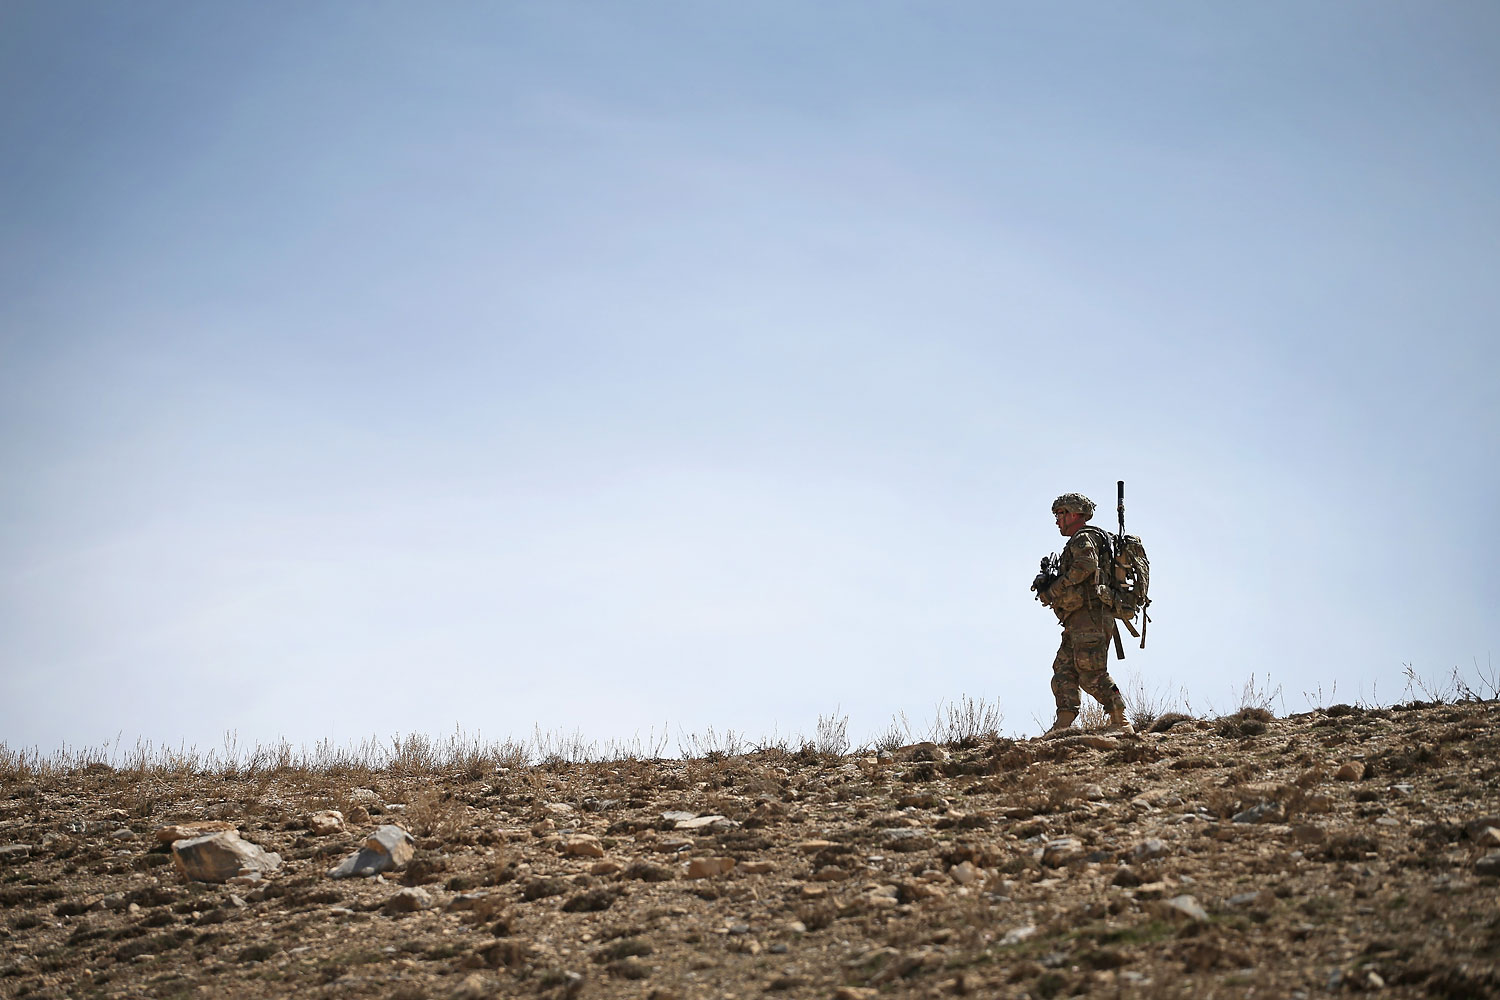 U.S. soldier walks along a ridgeline during a patrol up a mountainside near Forward Operating Base Shank on March 31, 2014 near Pul-e Alam, Afghanistan.